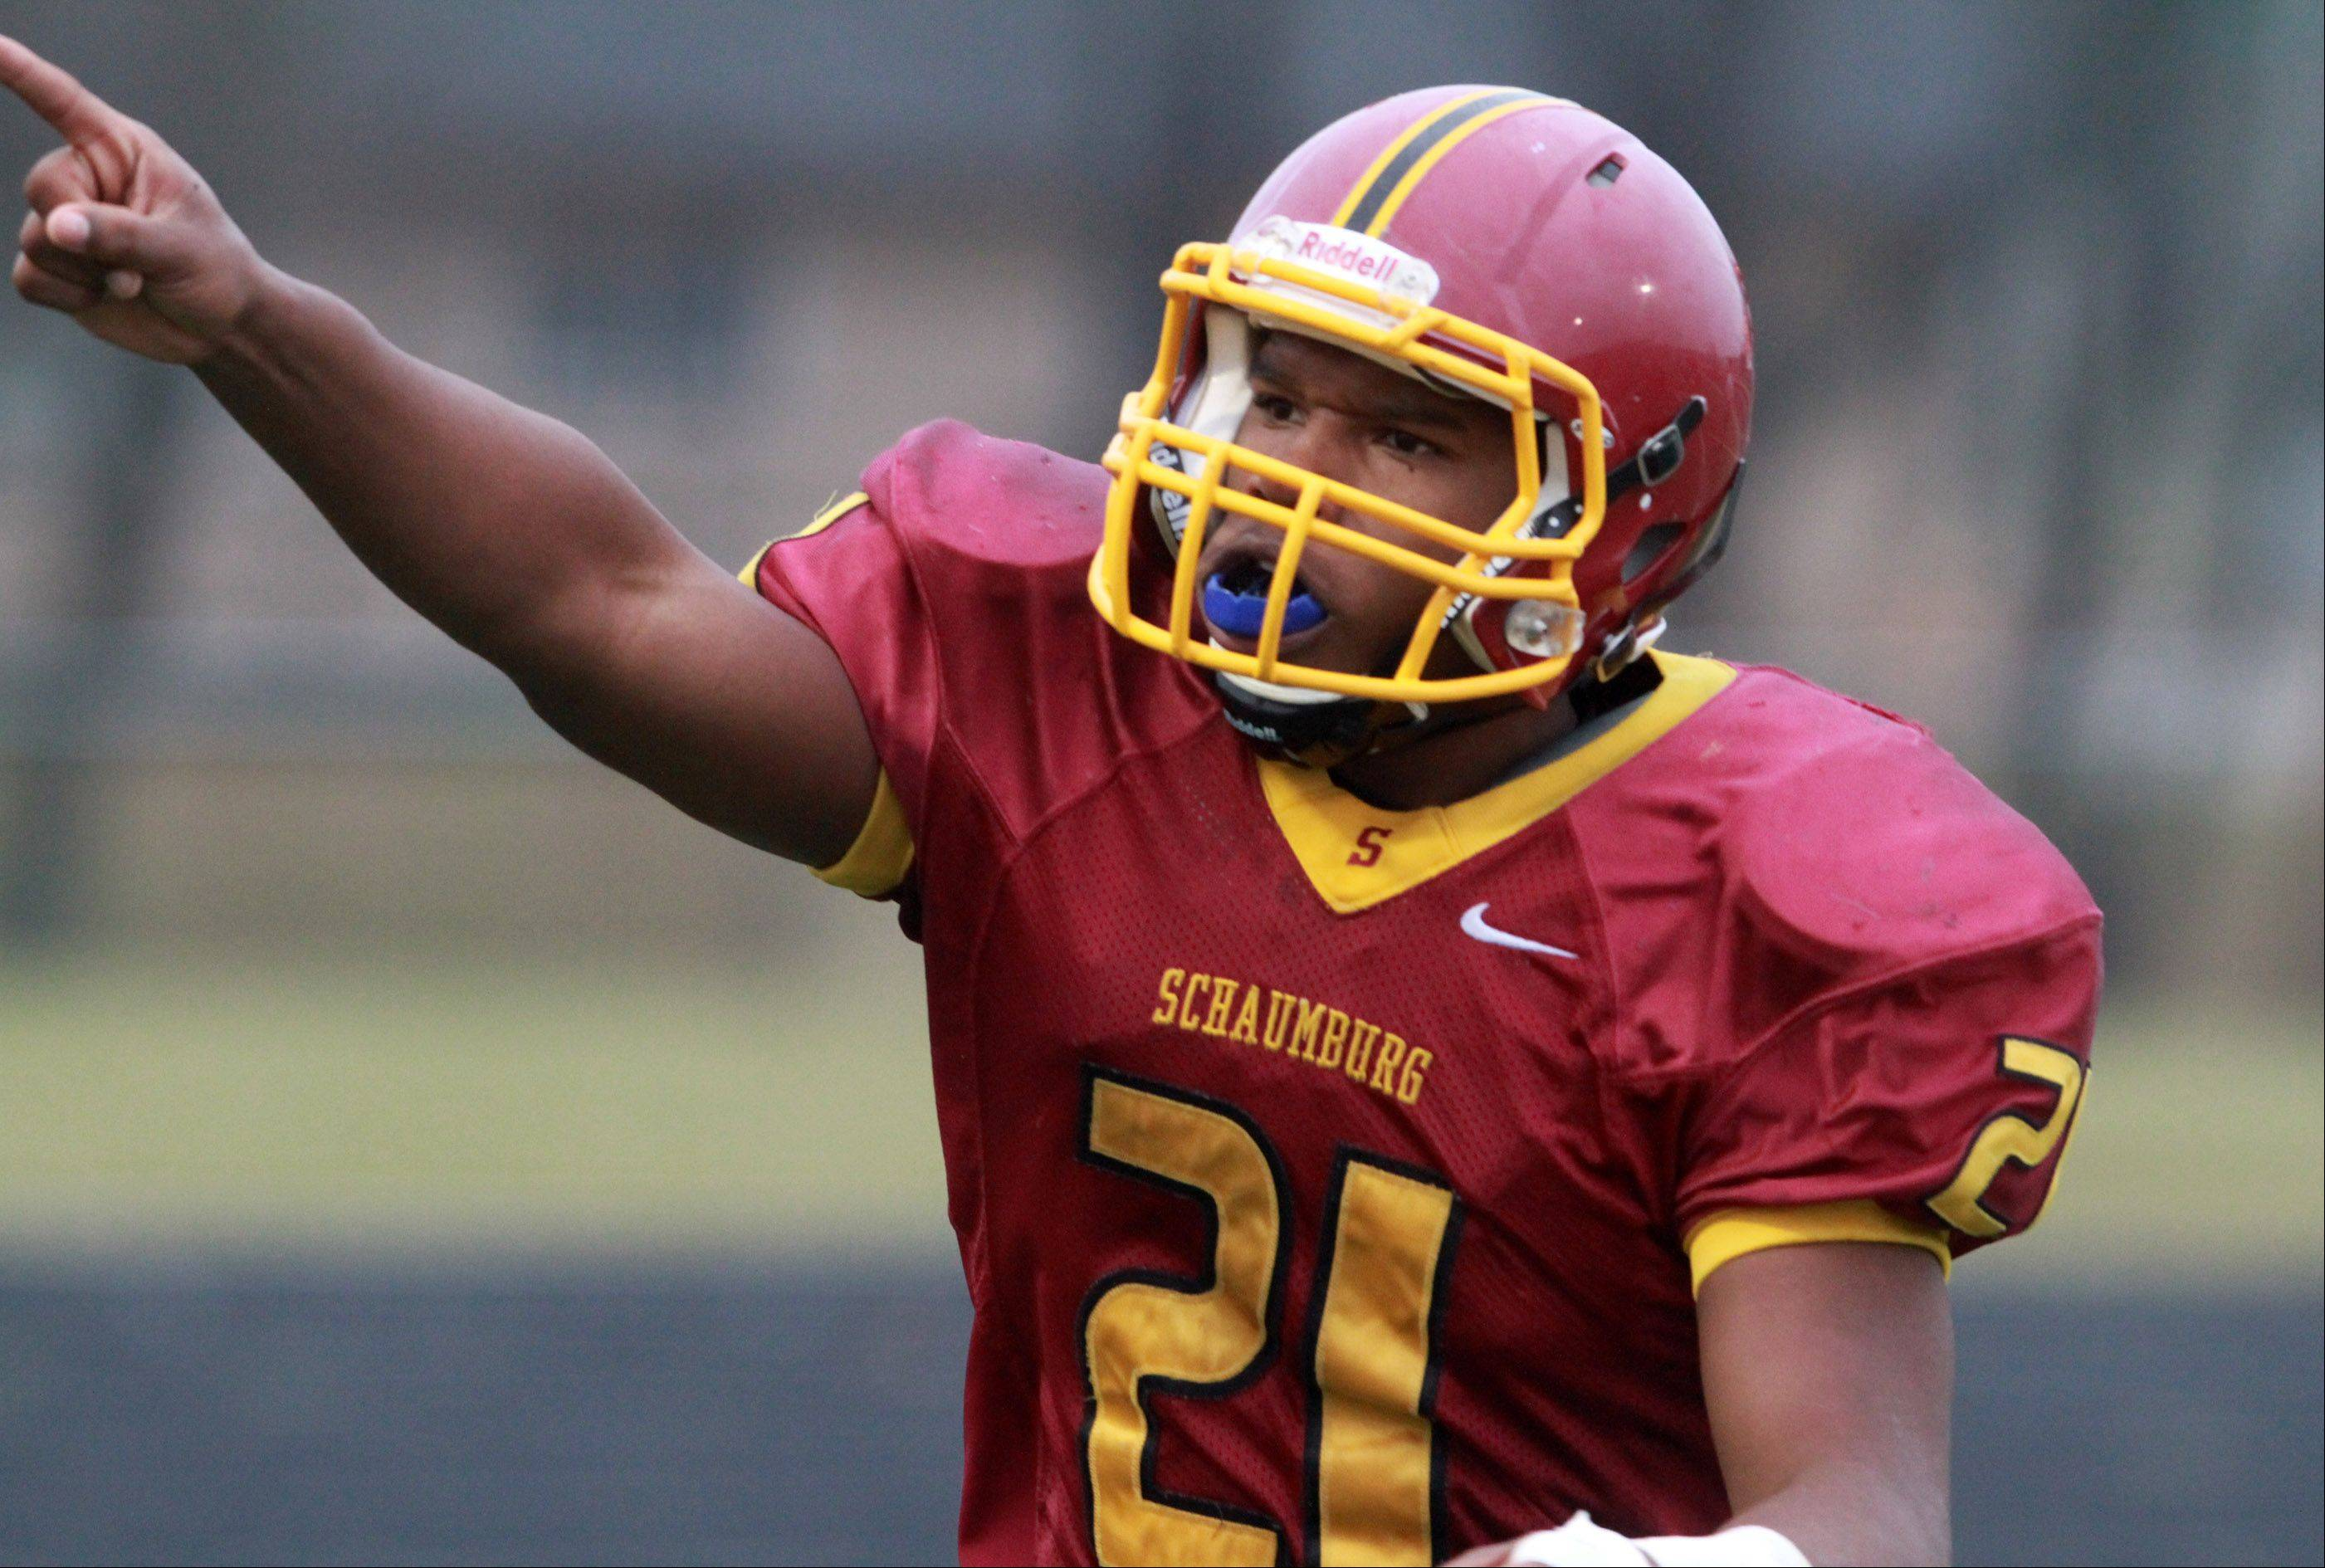 Schaumburg Justice Macneal-Young celebrates running for a touchdown against Glenbard West.